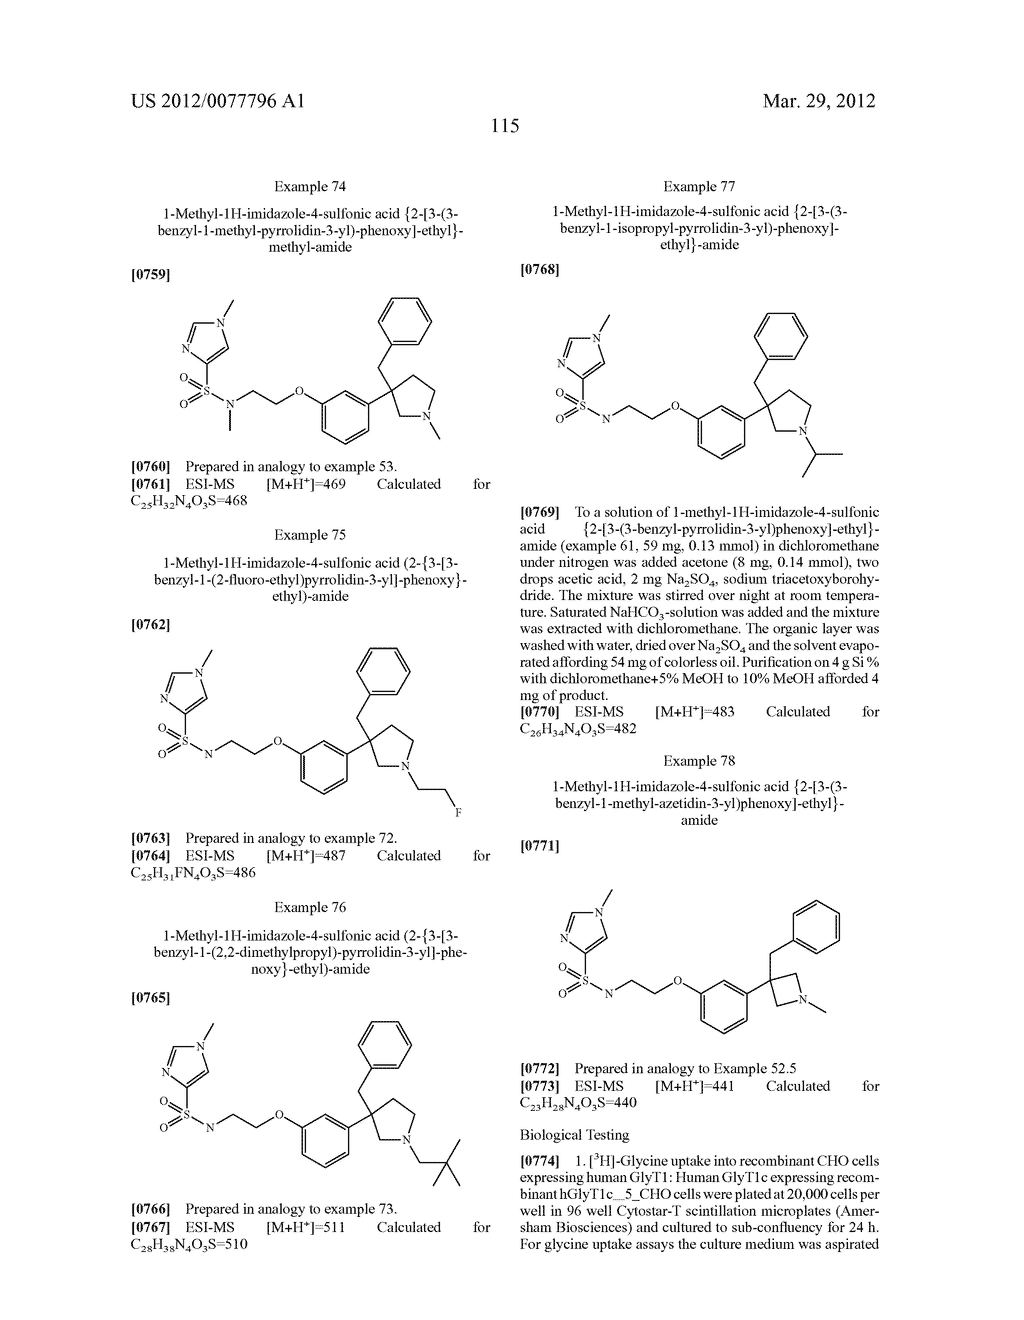 PHENALKYLAMINE DERIVATIVES, PHARMACEUTICAL COMPOSITIONS CONTAINING THEM,     AND THEIR USE IN THERAPY - diagram, schematic, and image 116